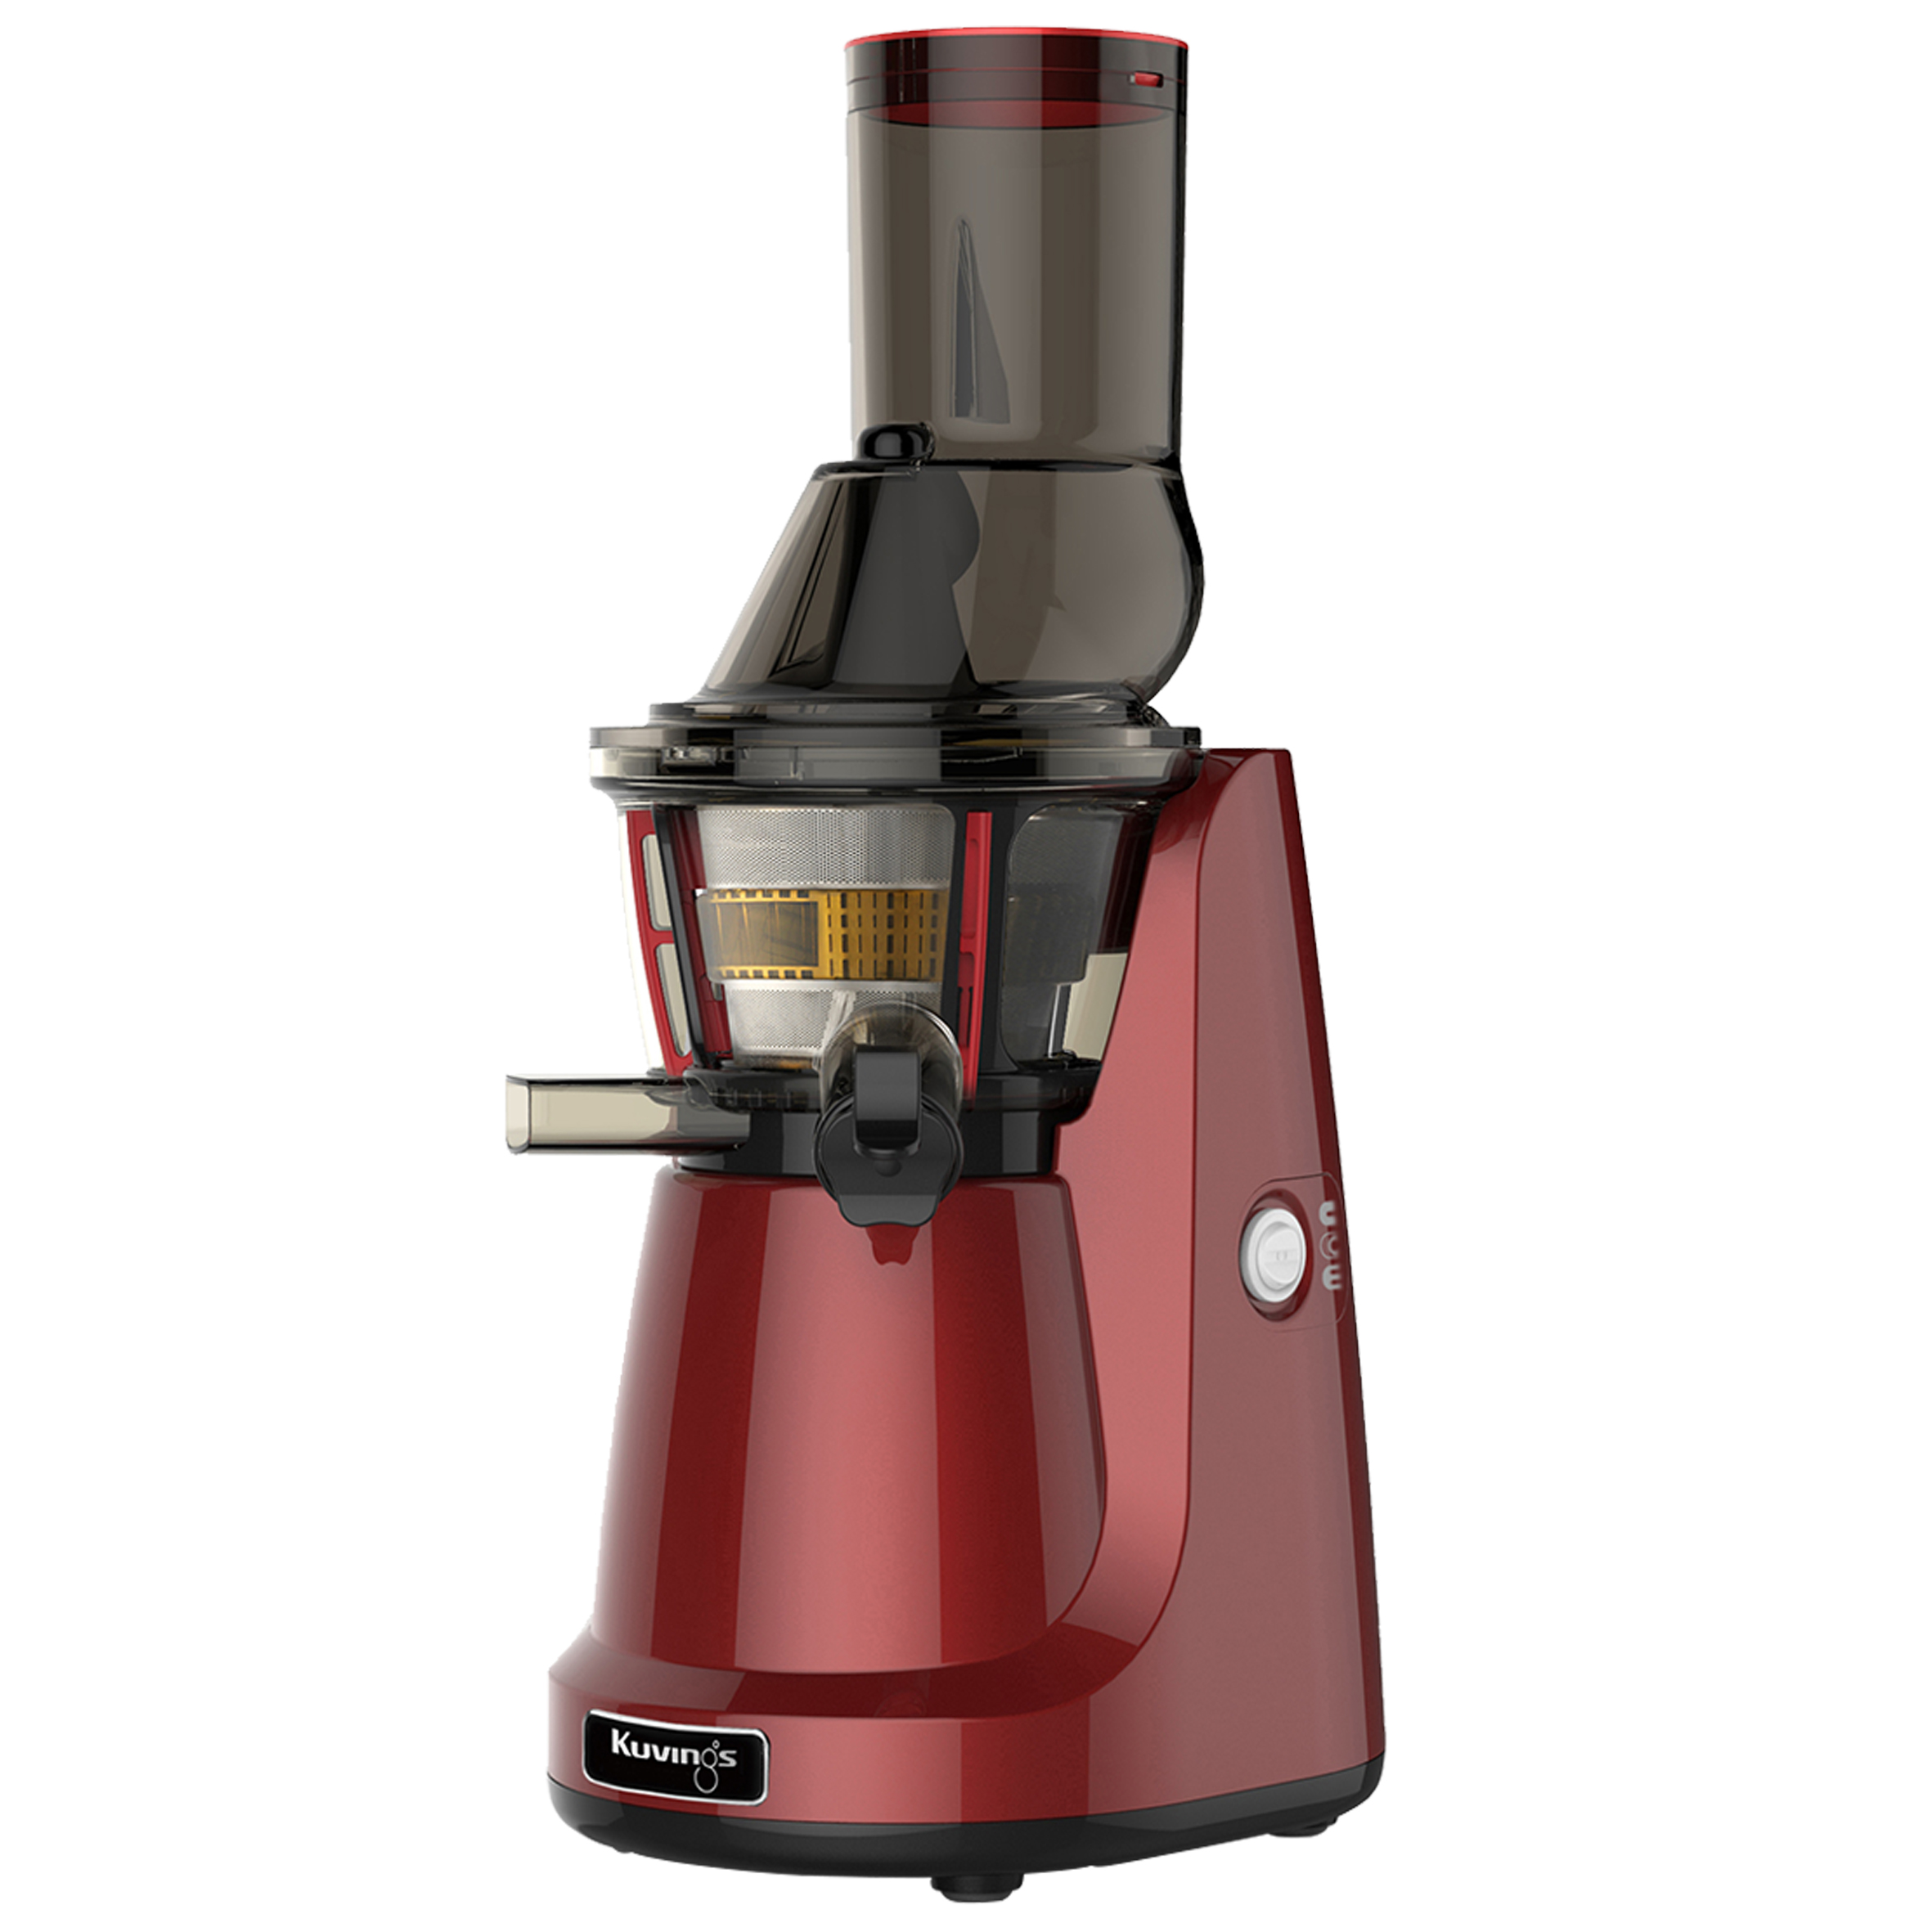 Wilfa Sj 150a Slow Juicer Review : Kuvings Whole Slow Juicer B3000 Reviews - ProductReview.com.au